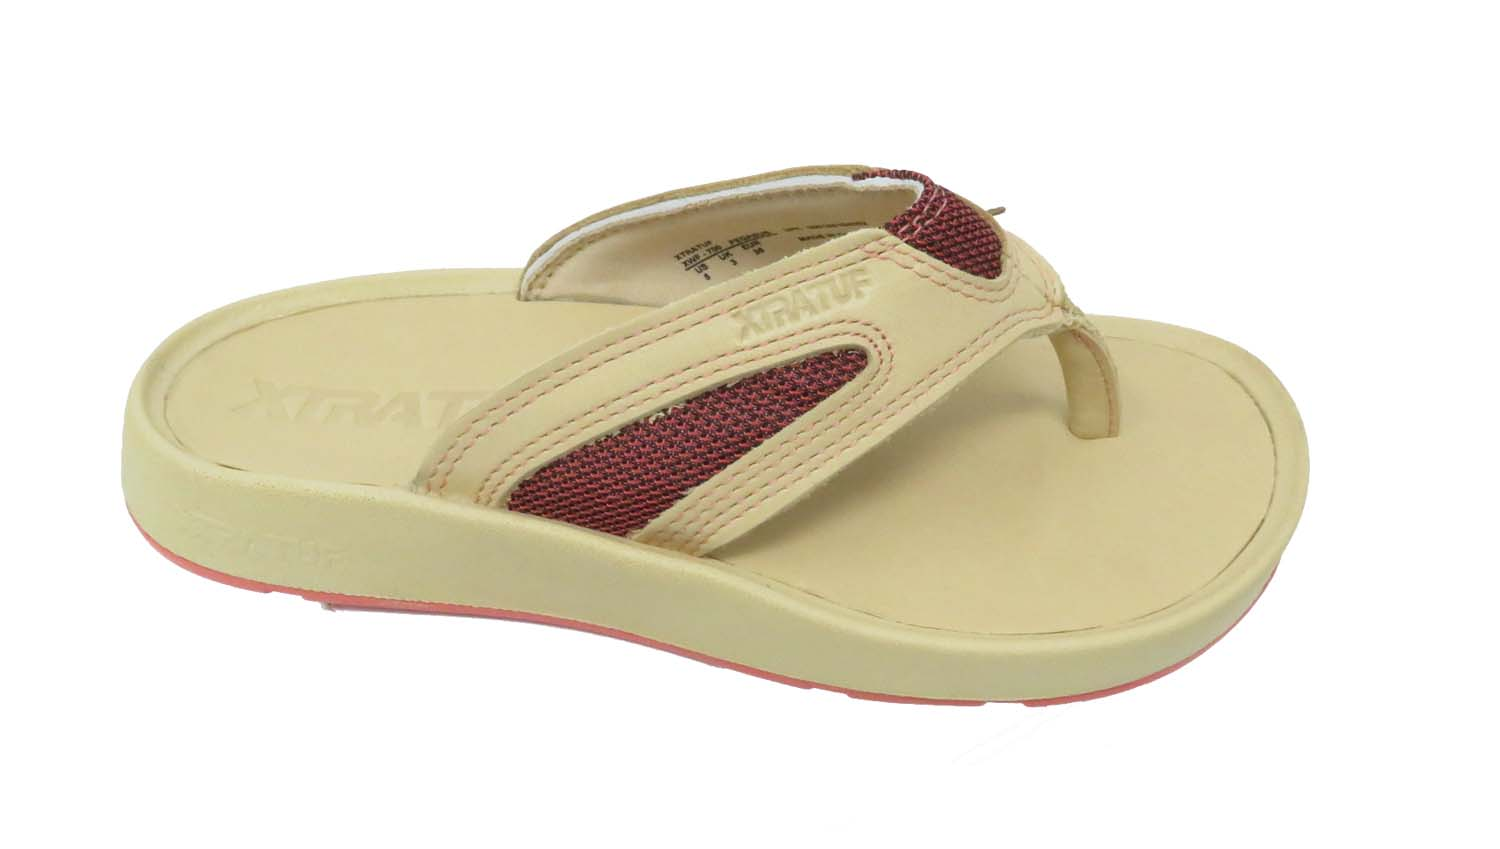 Xtratuf Women's South Shore Tan/Coral Size 6 Performance Sandal